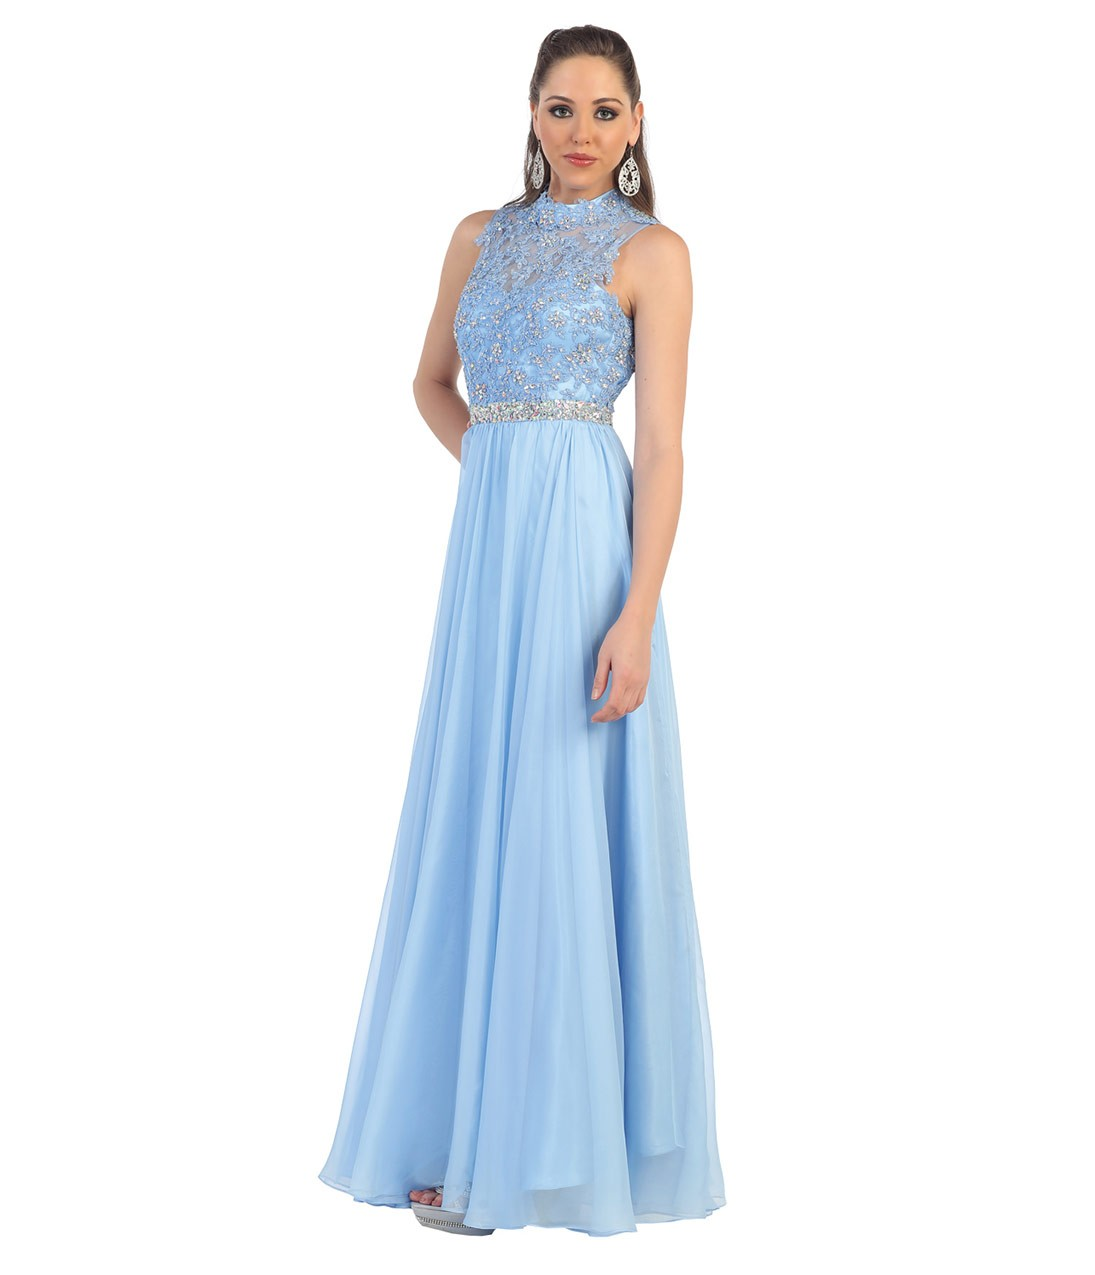 Halter Neck Beaded Lace Bodice Crystal Detailling Long A